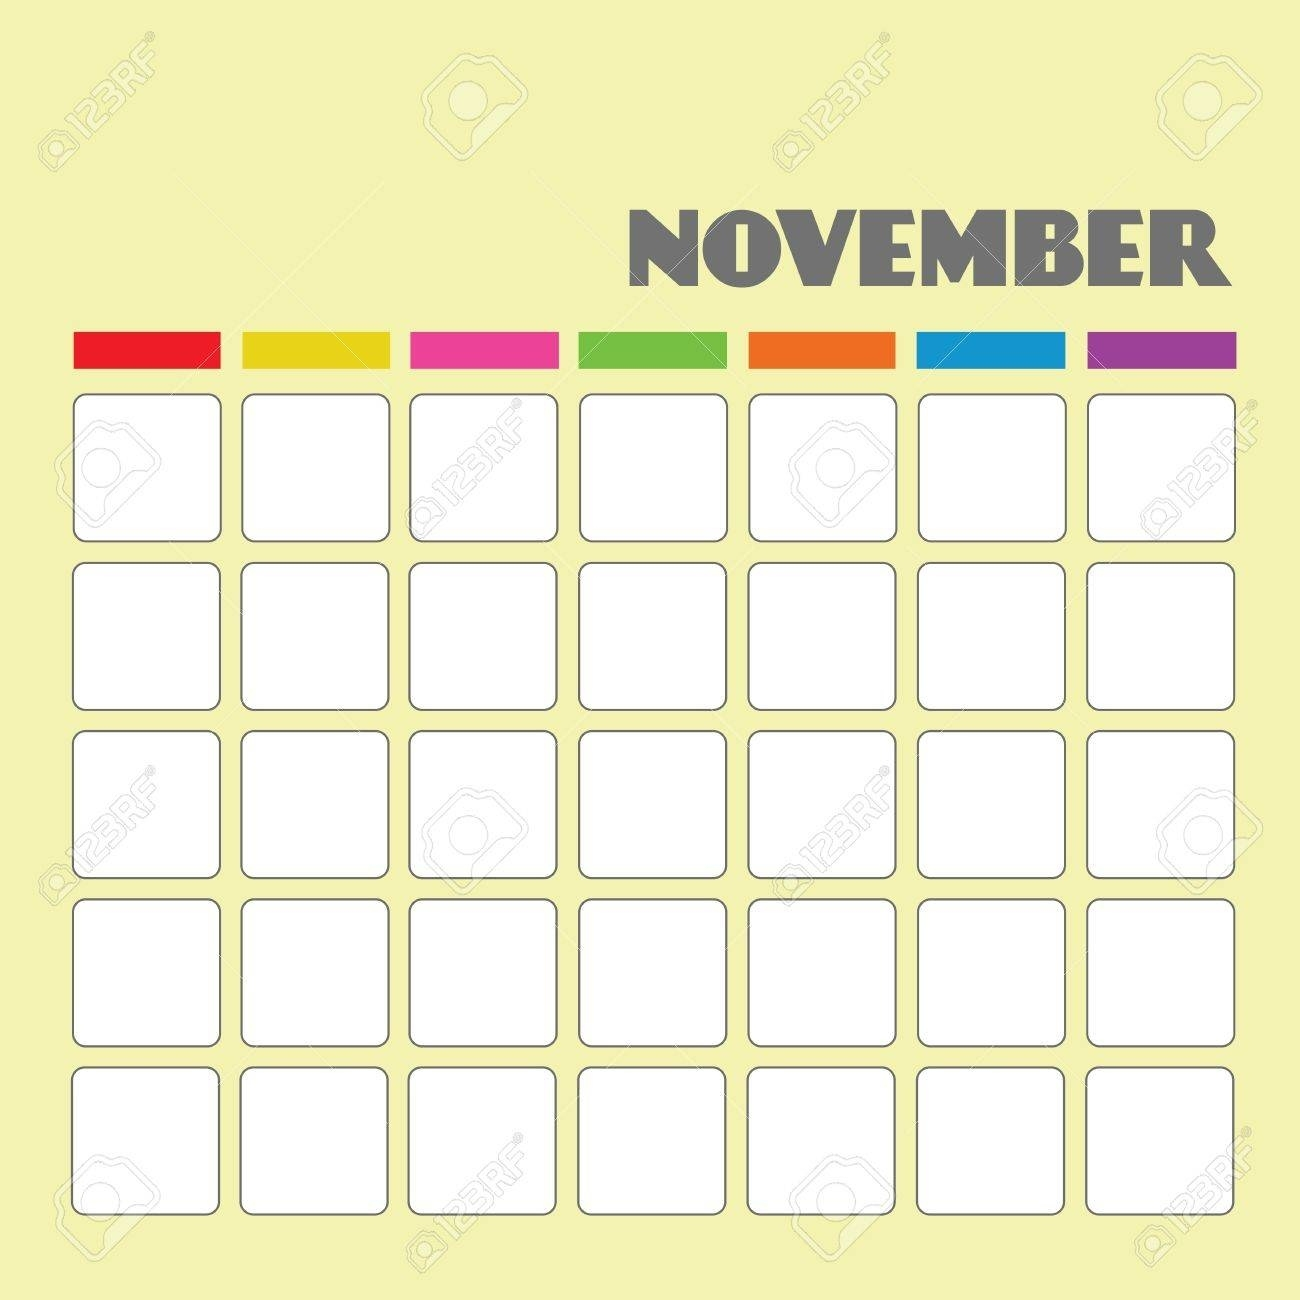 Blank Calendar For Your Use Royalty Free Cliparts, Vectors, And Blank Calendar To Use